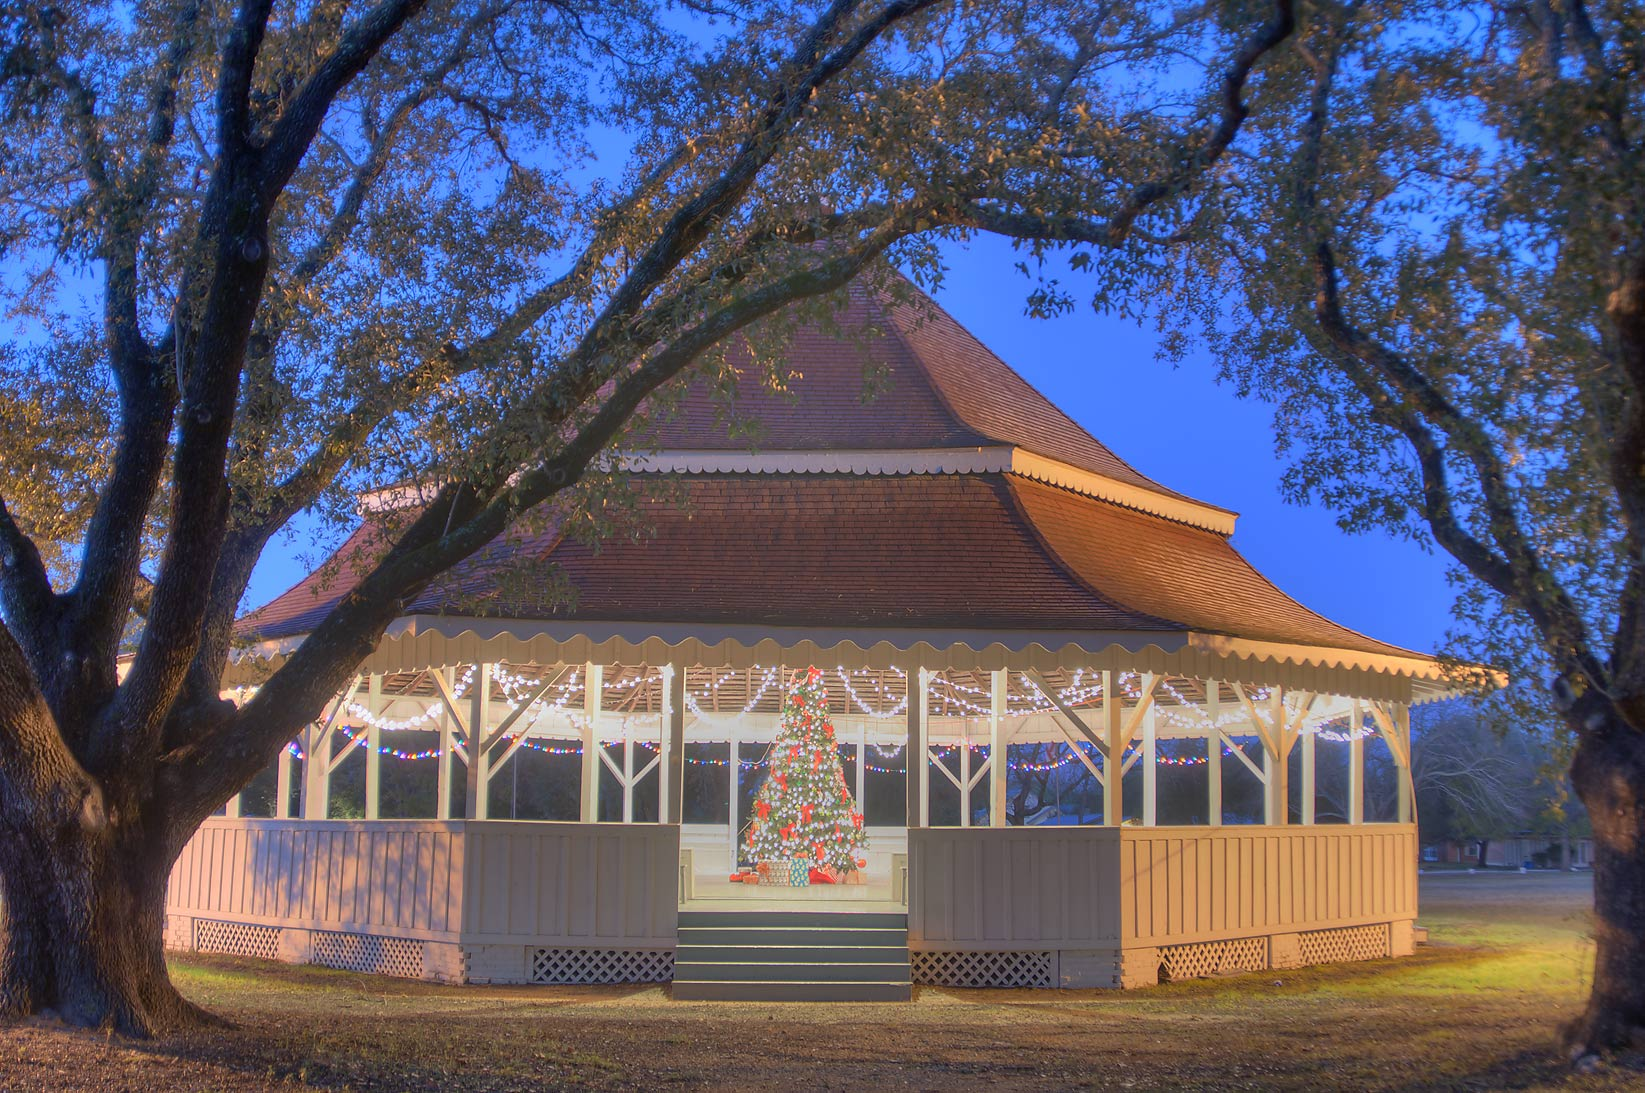 Gazebo-style octogonal pavilion in Virginia Field Park. Calvert, Texas